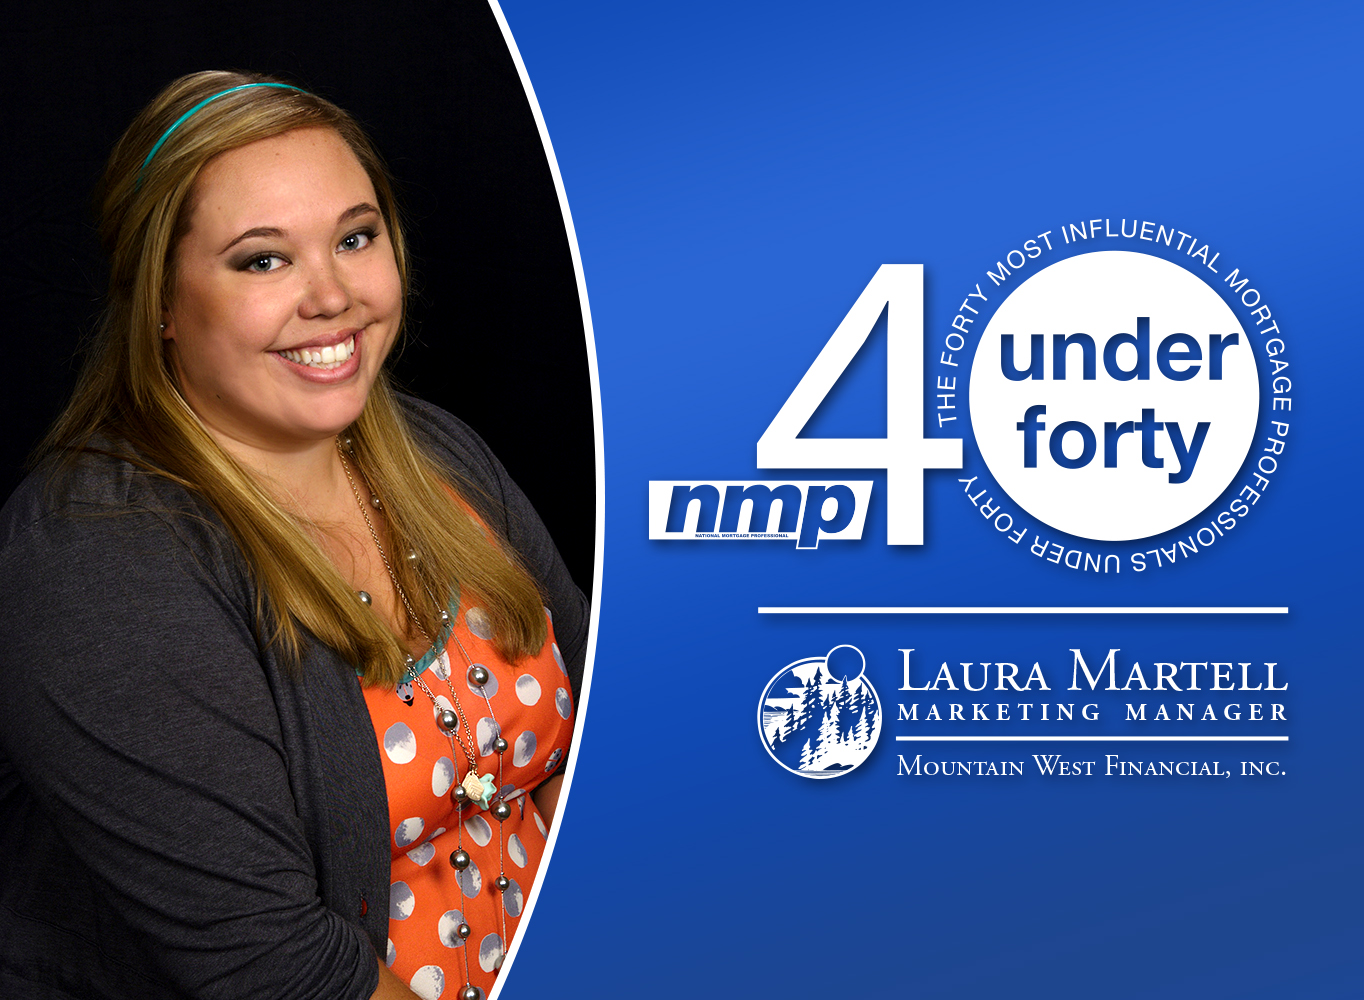 Laura Martell, Marketing Manager at Mountain West Financial Wins National Mortgage Professional Magazine Award